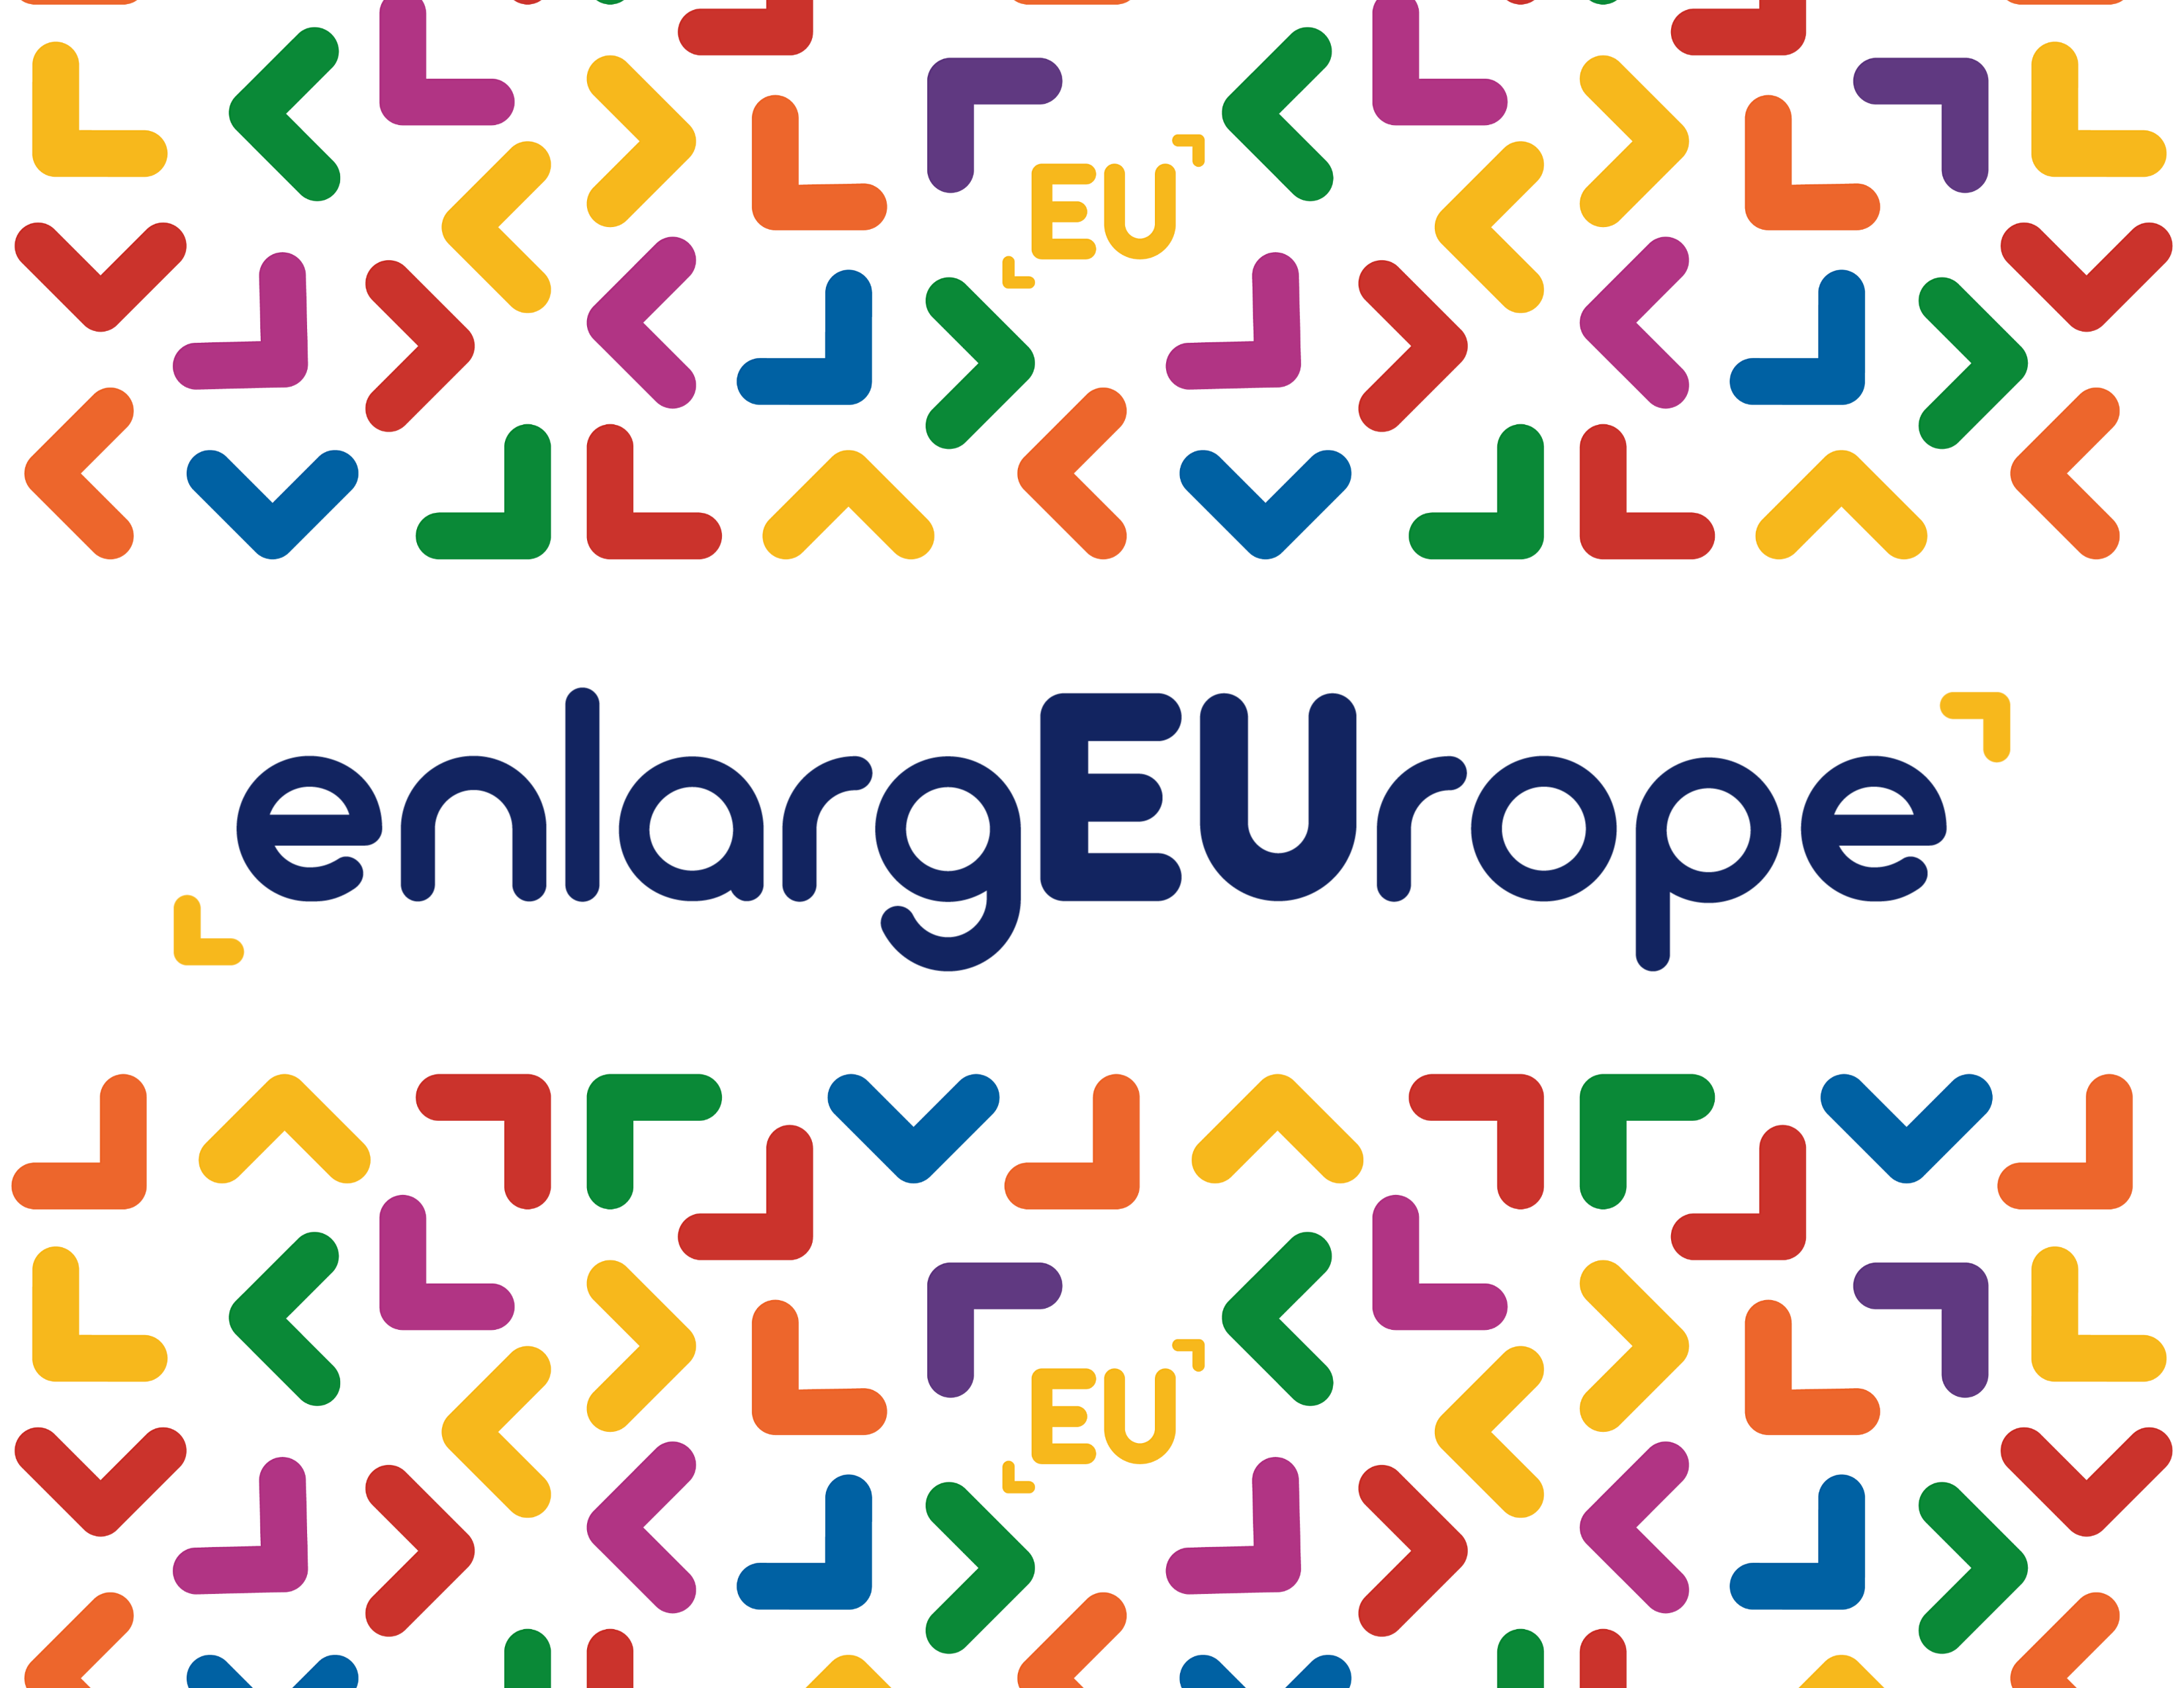 EnlargeEUrope